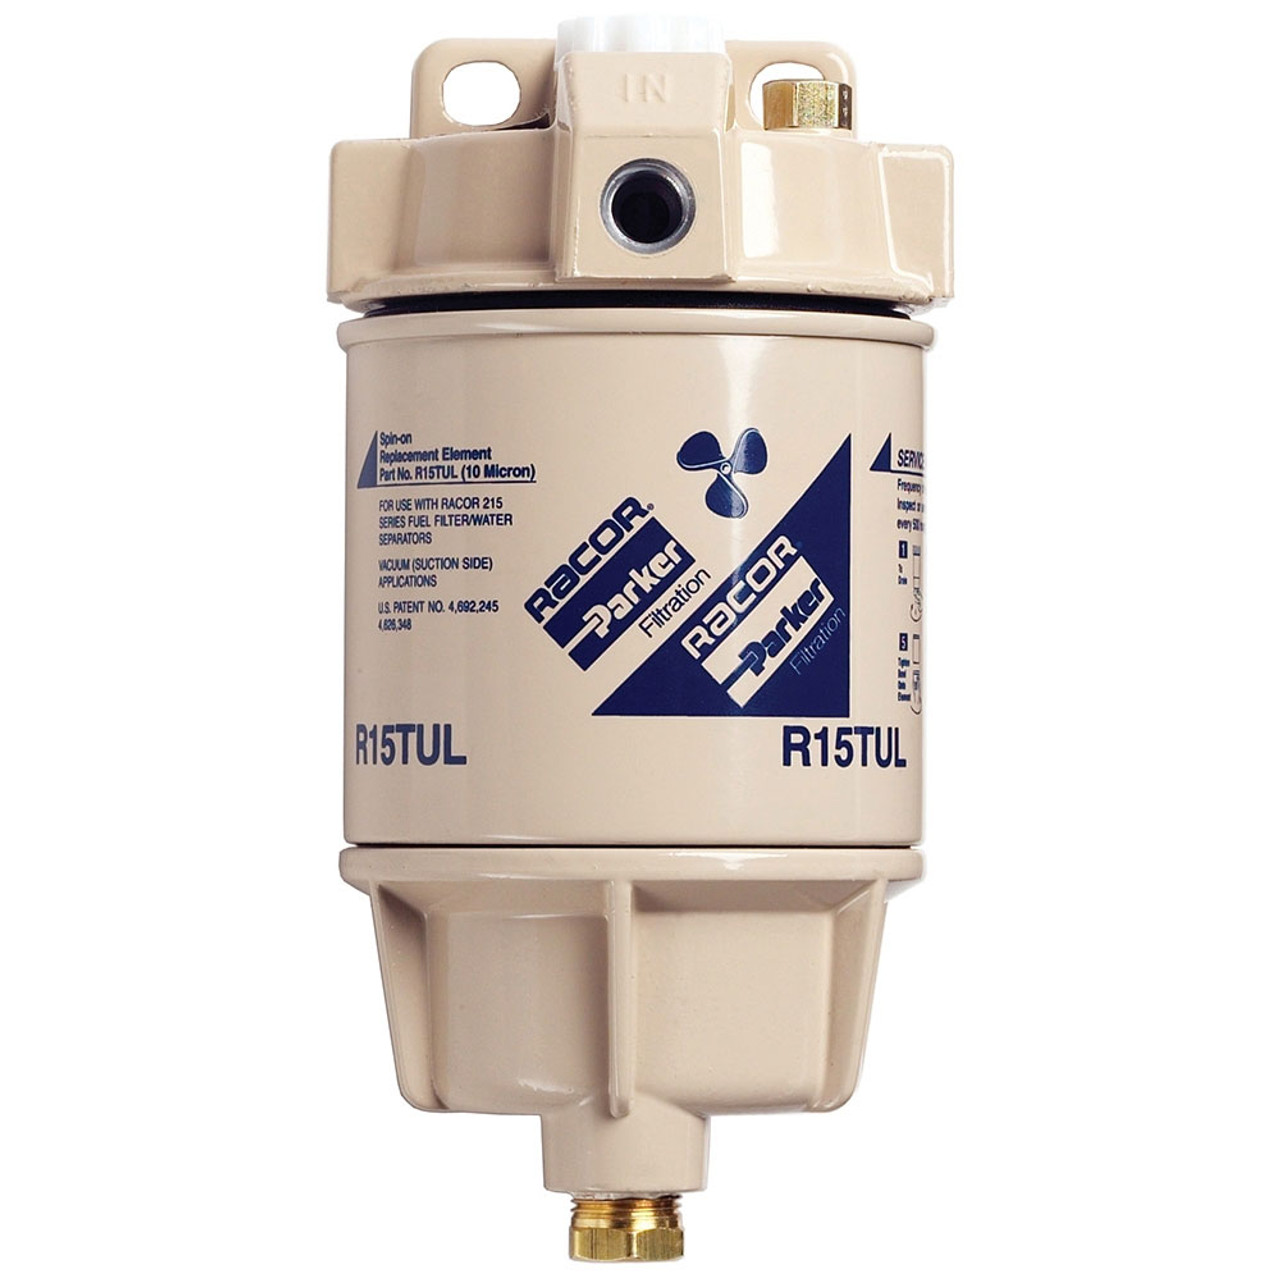 small resolution of racor 1 4 in 15 gph aquabloc marine spin on type diesel fuel filter water separator assembly 6 qty john m ellsworth co inc